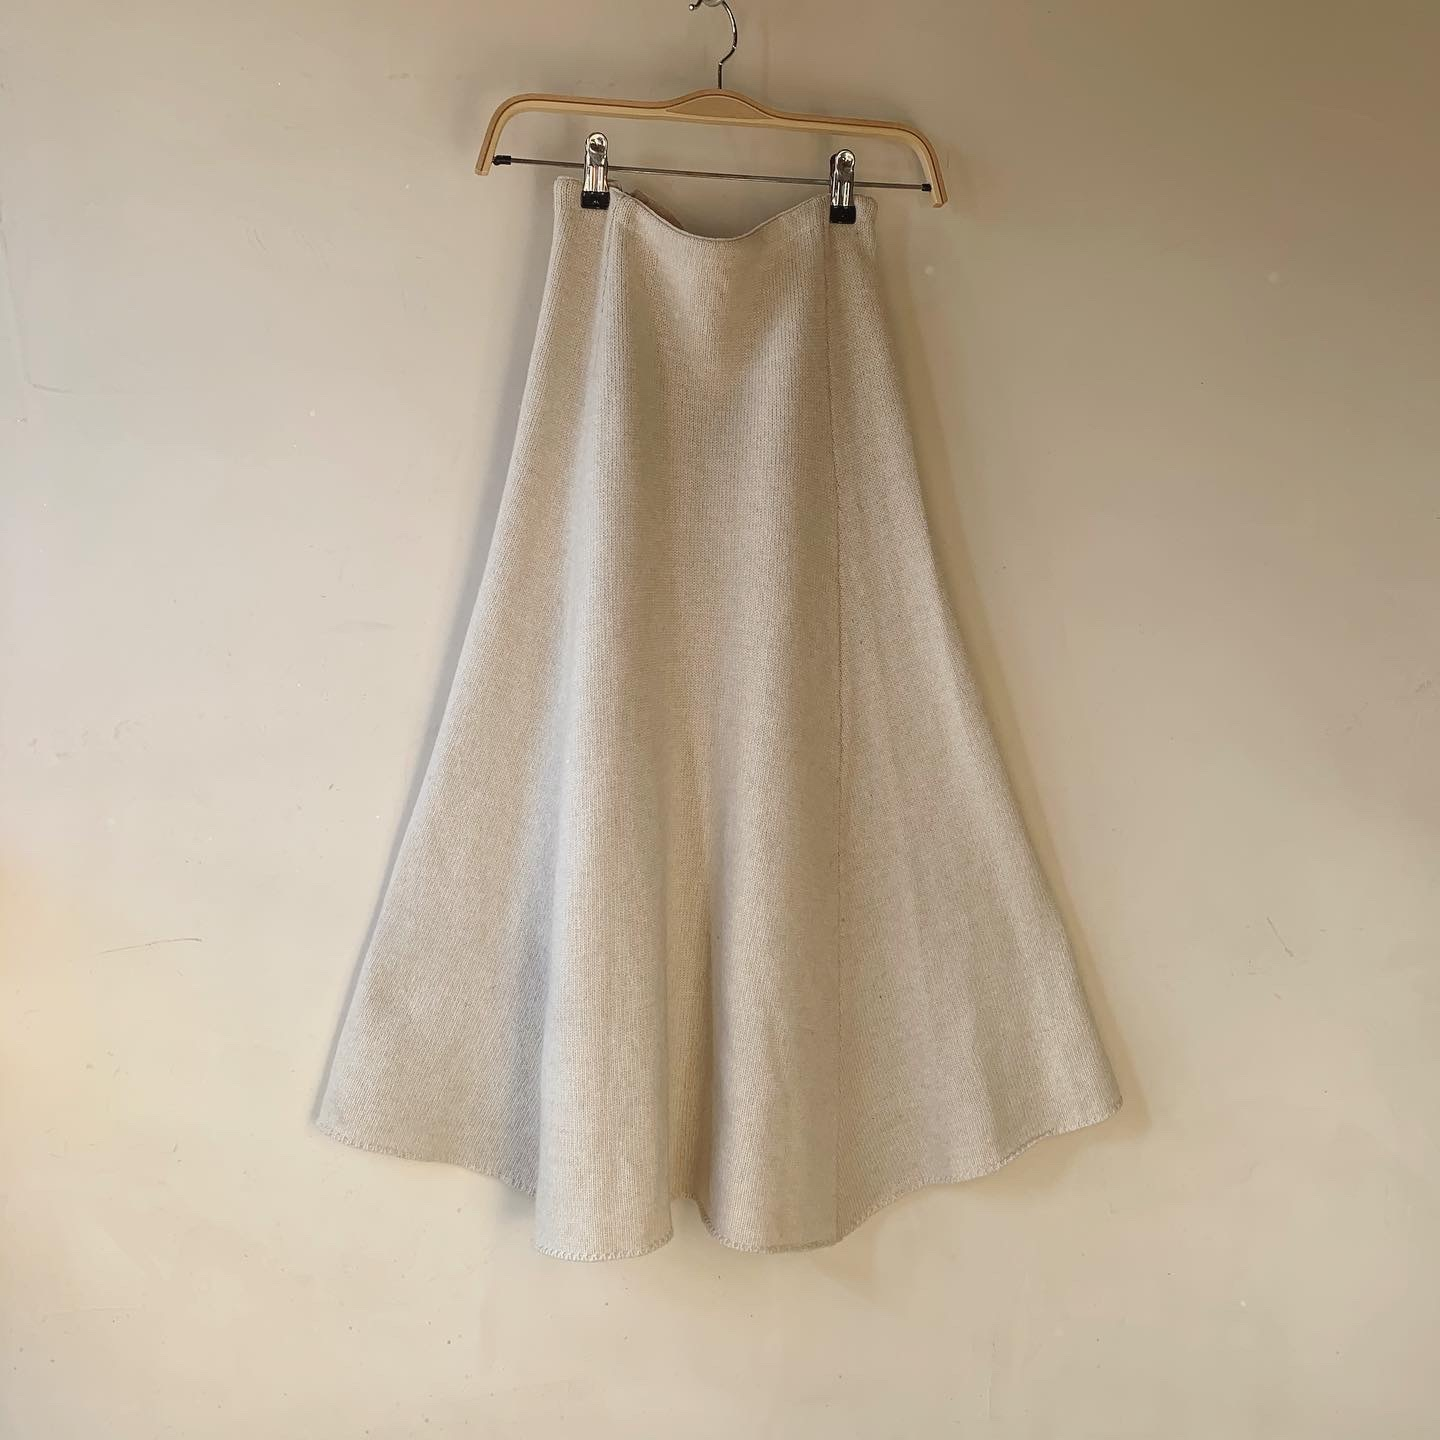 vintage off-white cashmere wook knit skirt